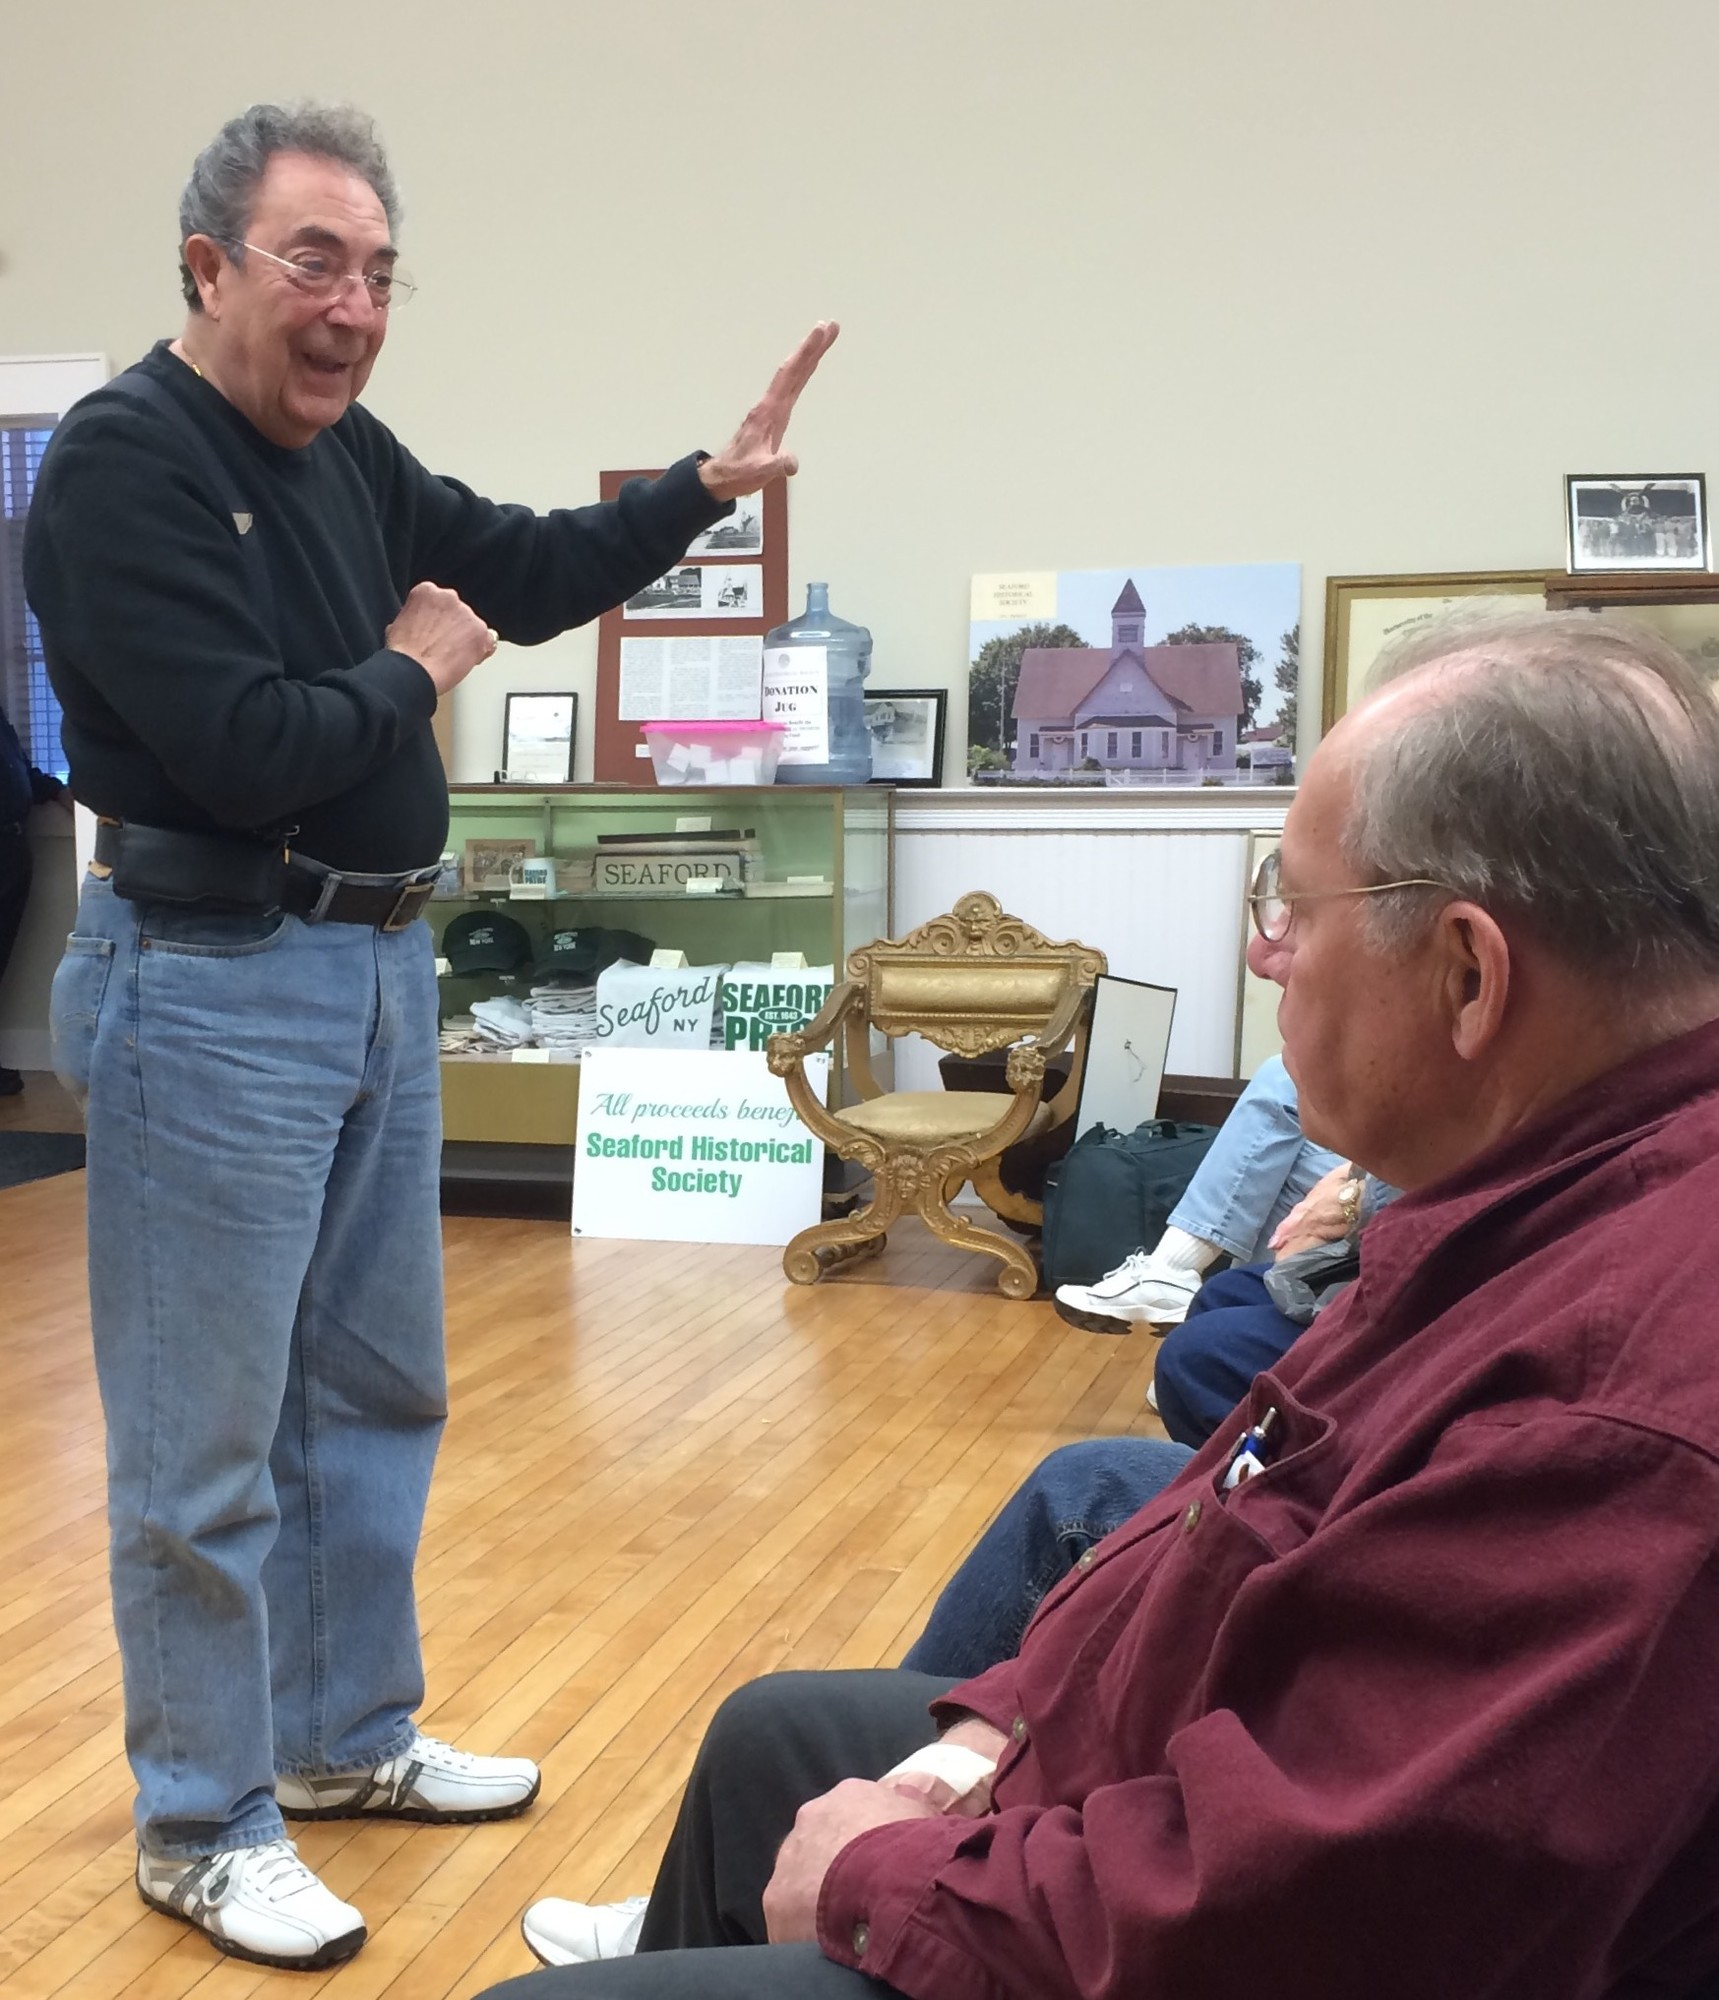 The Seaford Historical Society welcomed appraiser Eddie Costello to its museum on April 7.